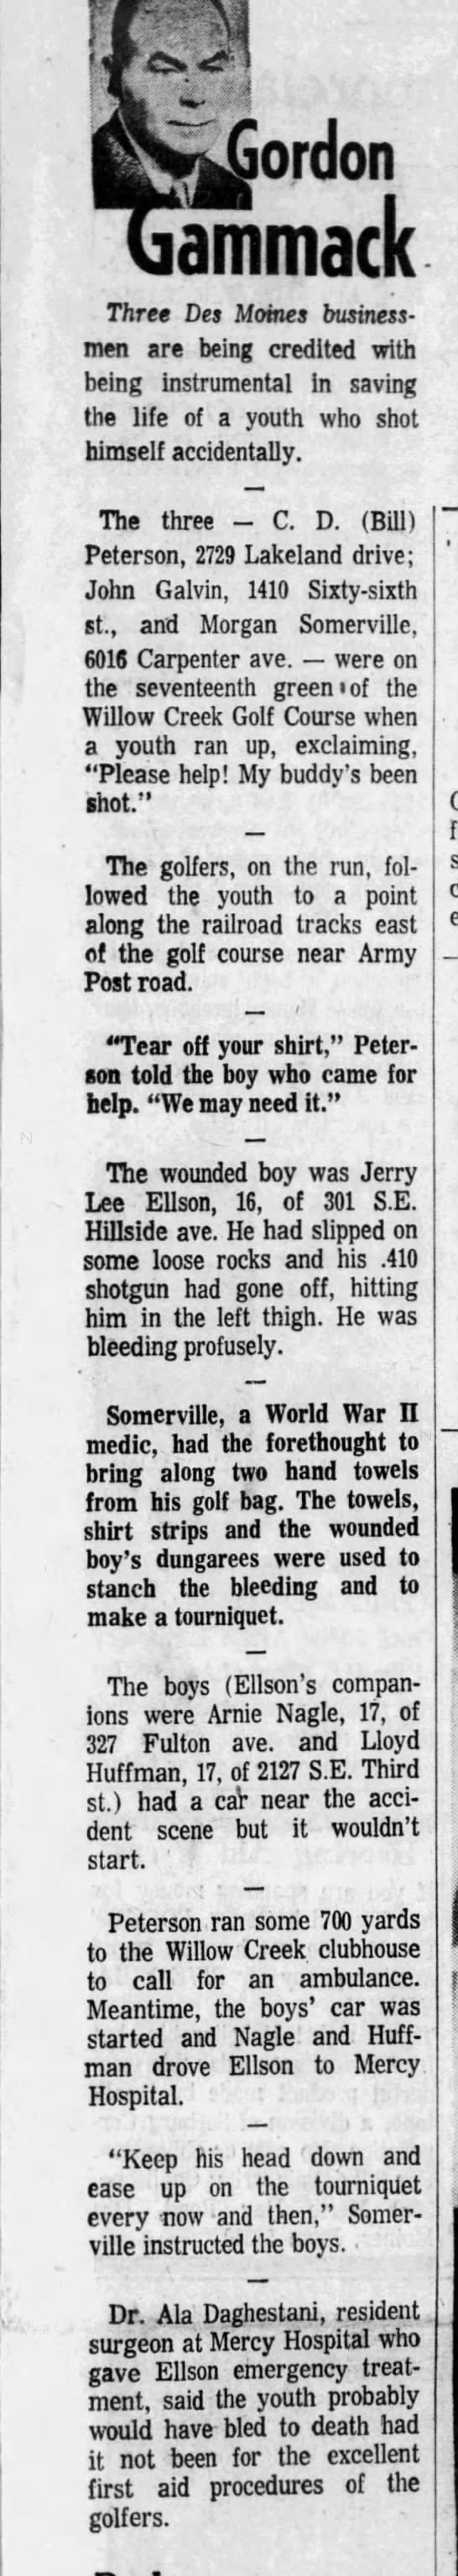 Clipping from Des Moines Tribune - Newspapers com